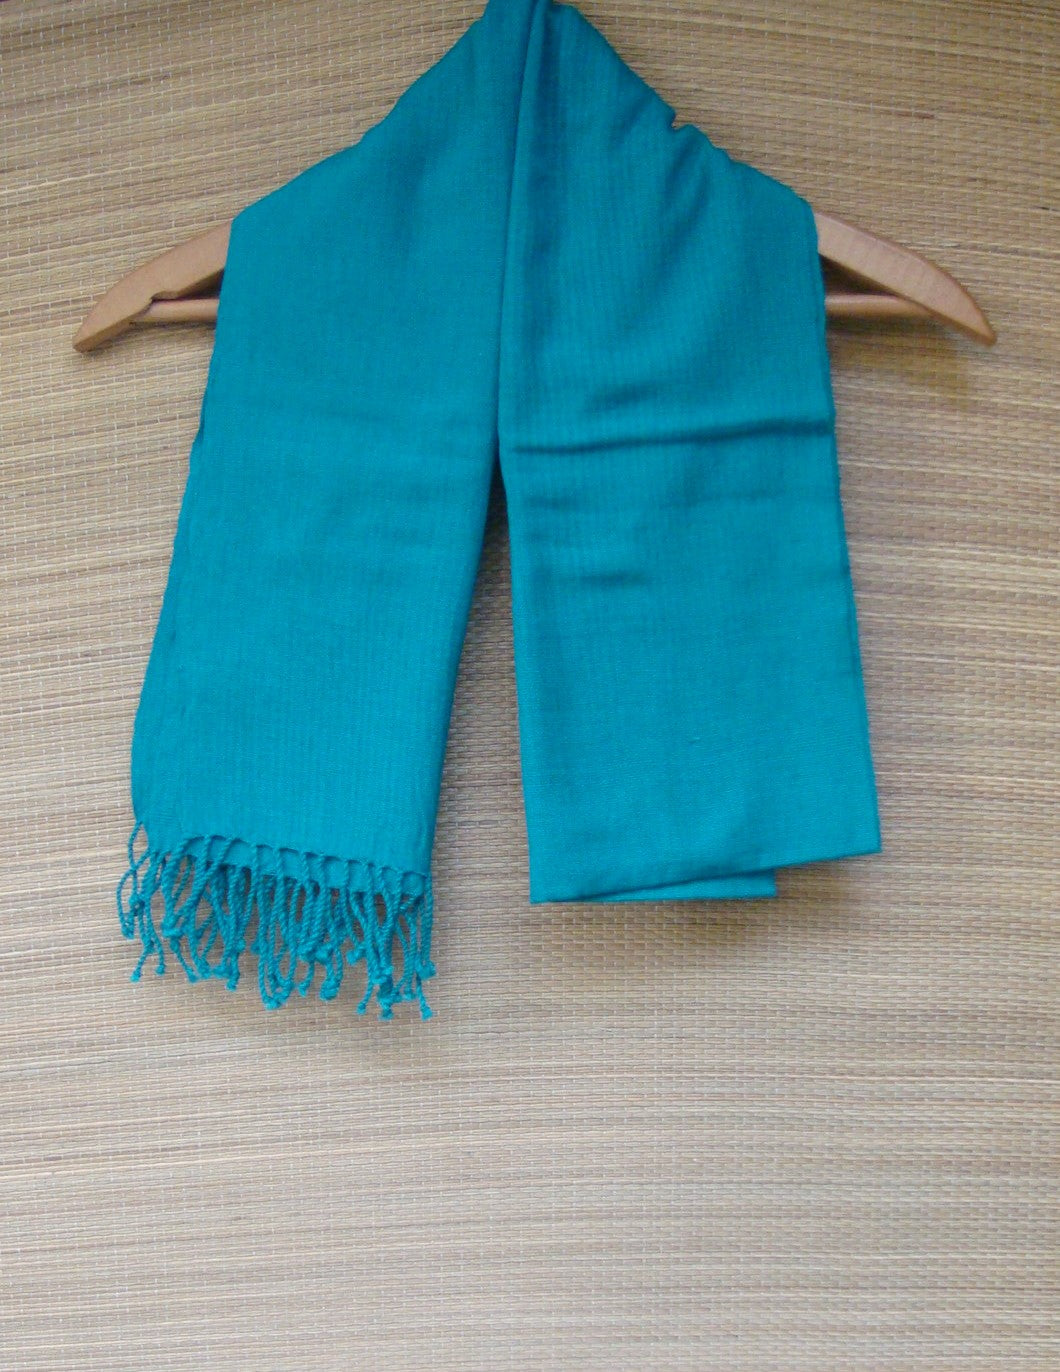 Blue Green Rebozo Shawl Wrap Handwoven Cotton from Mexico